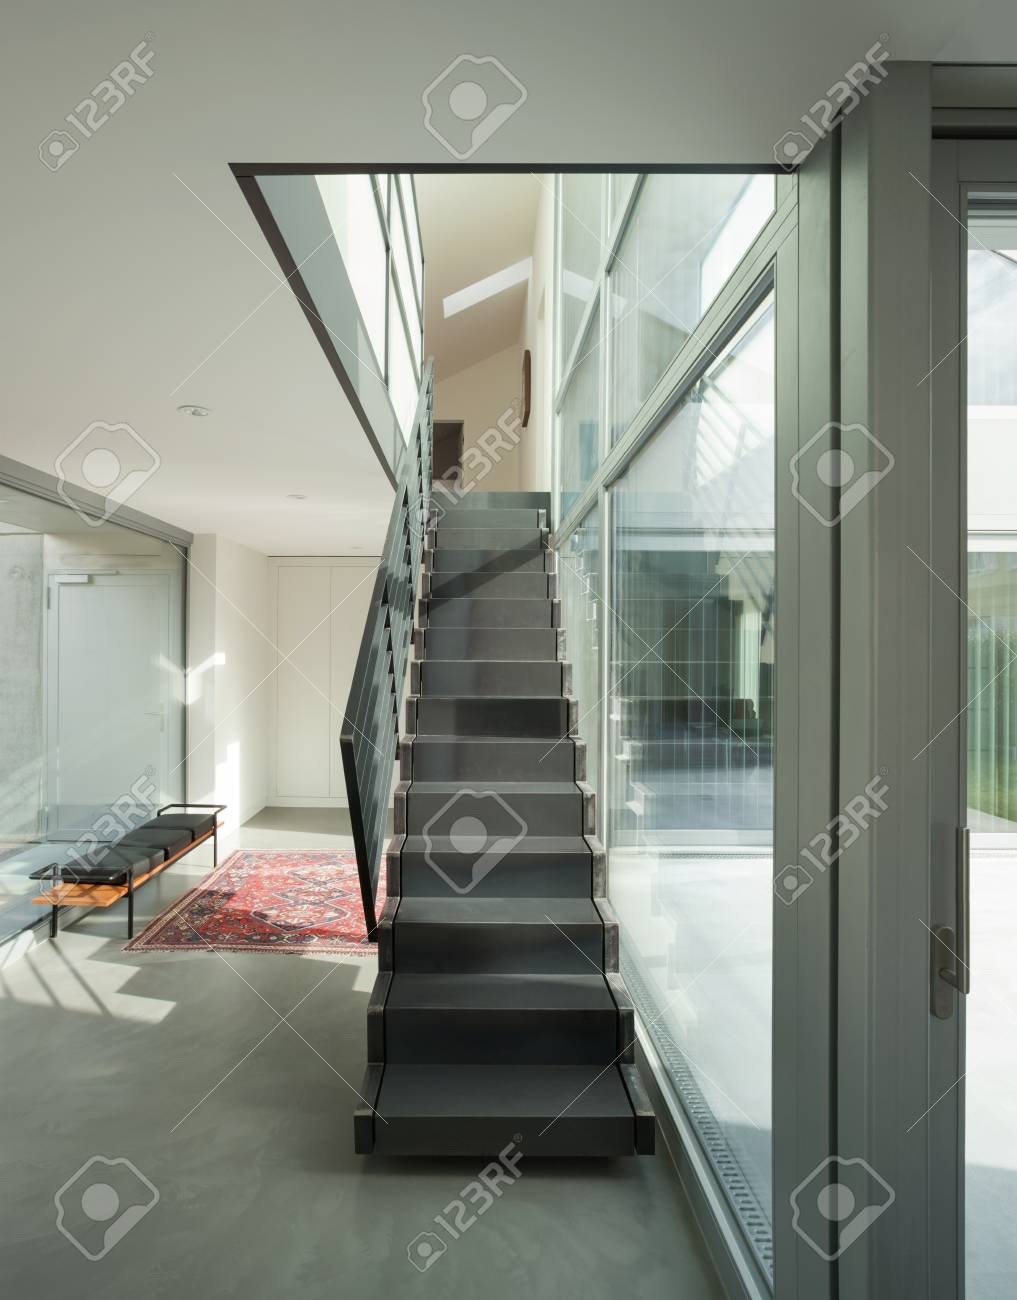 Interior of a modern house, hall with iron staircase